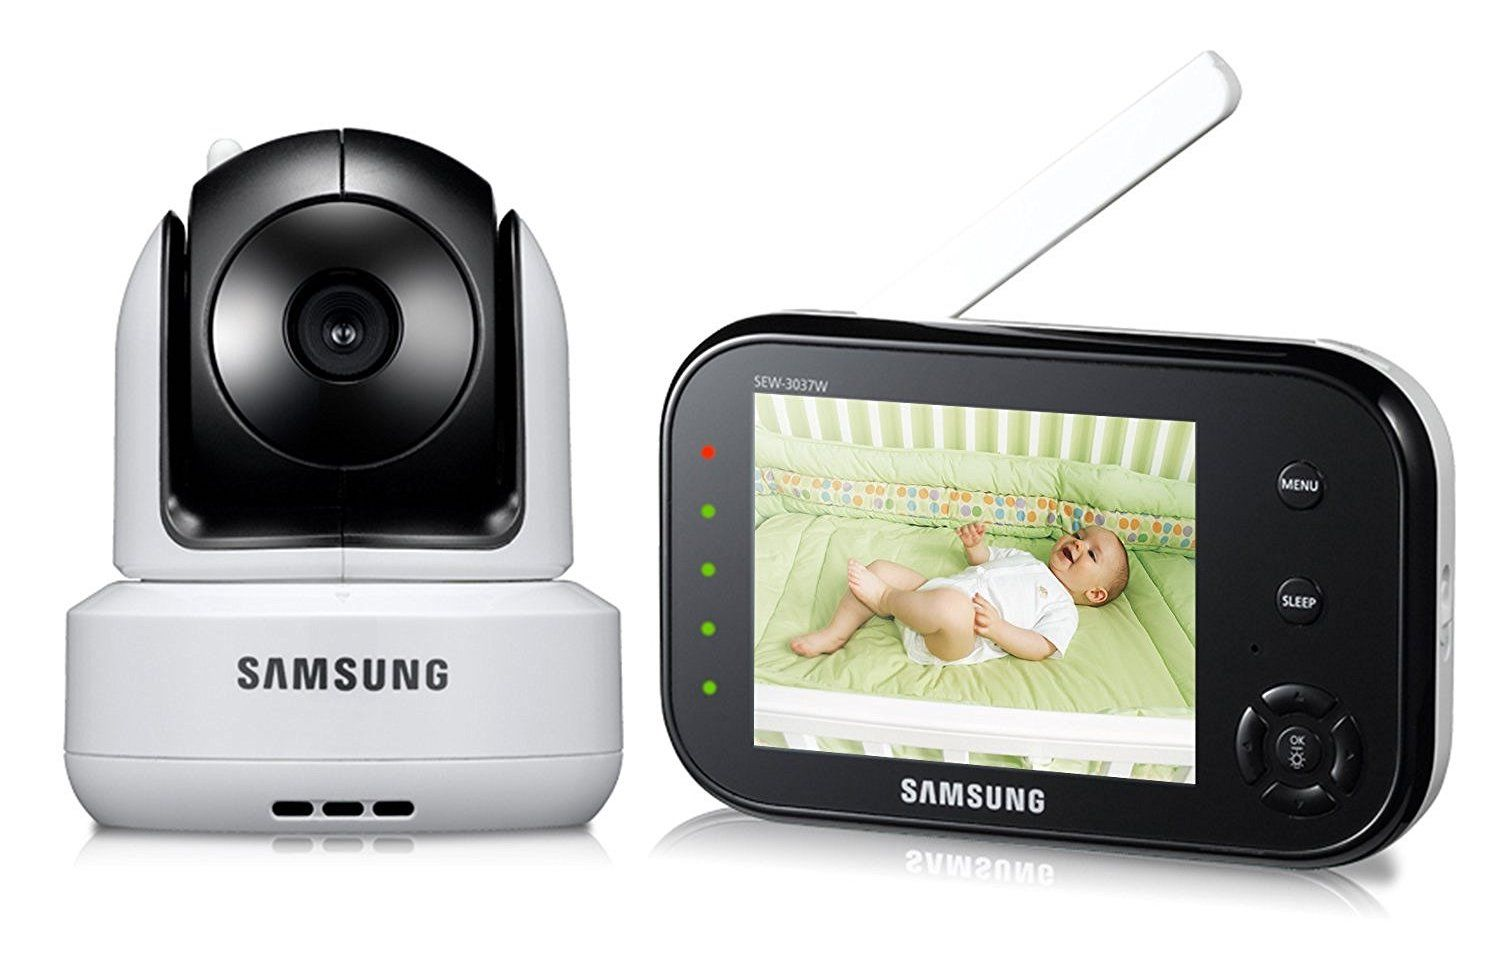 Samsung SafeView